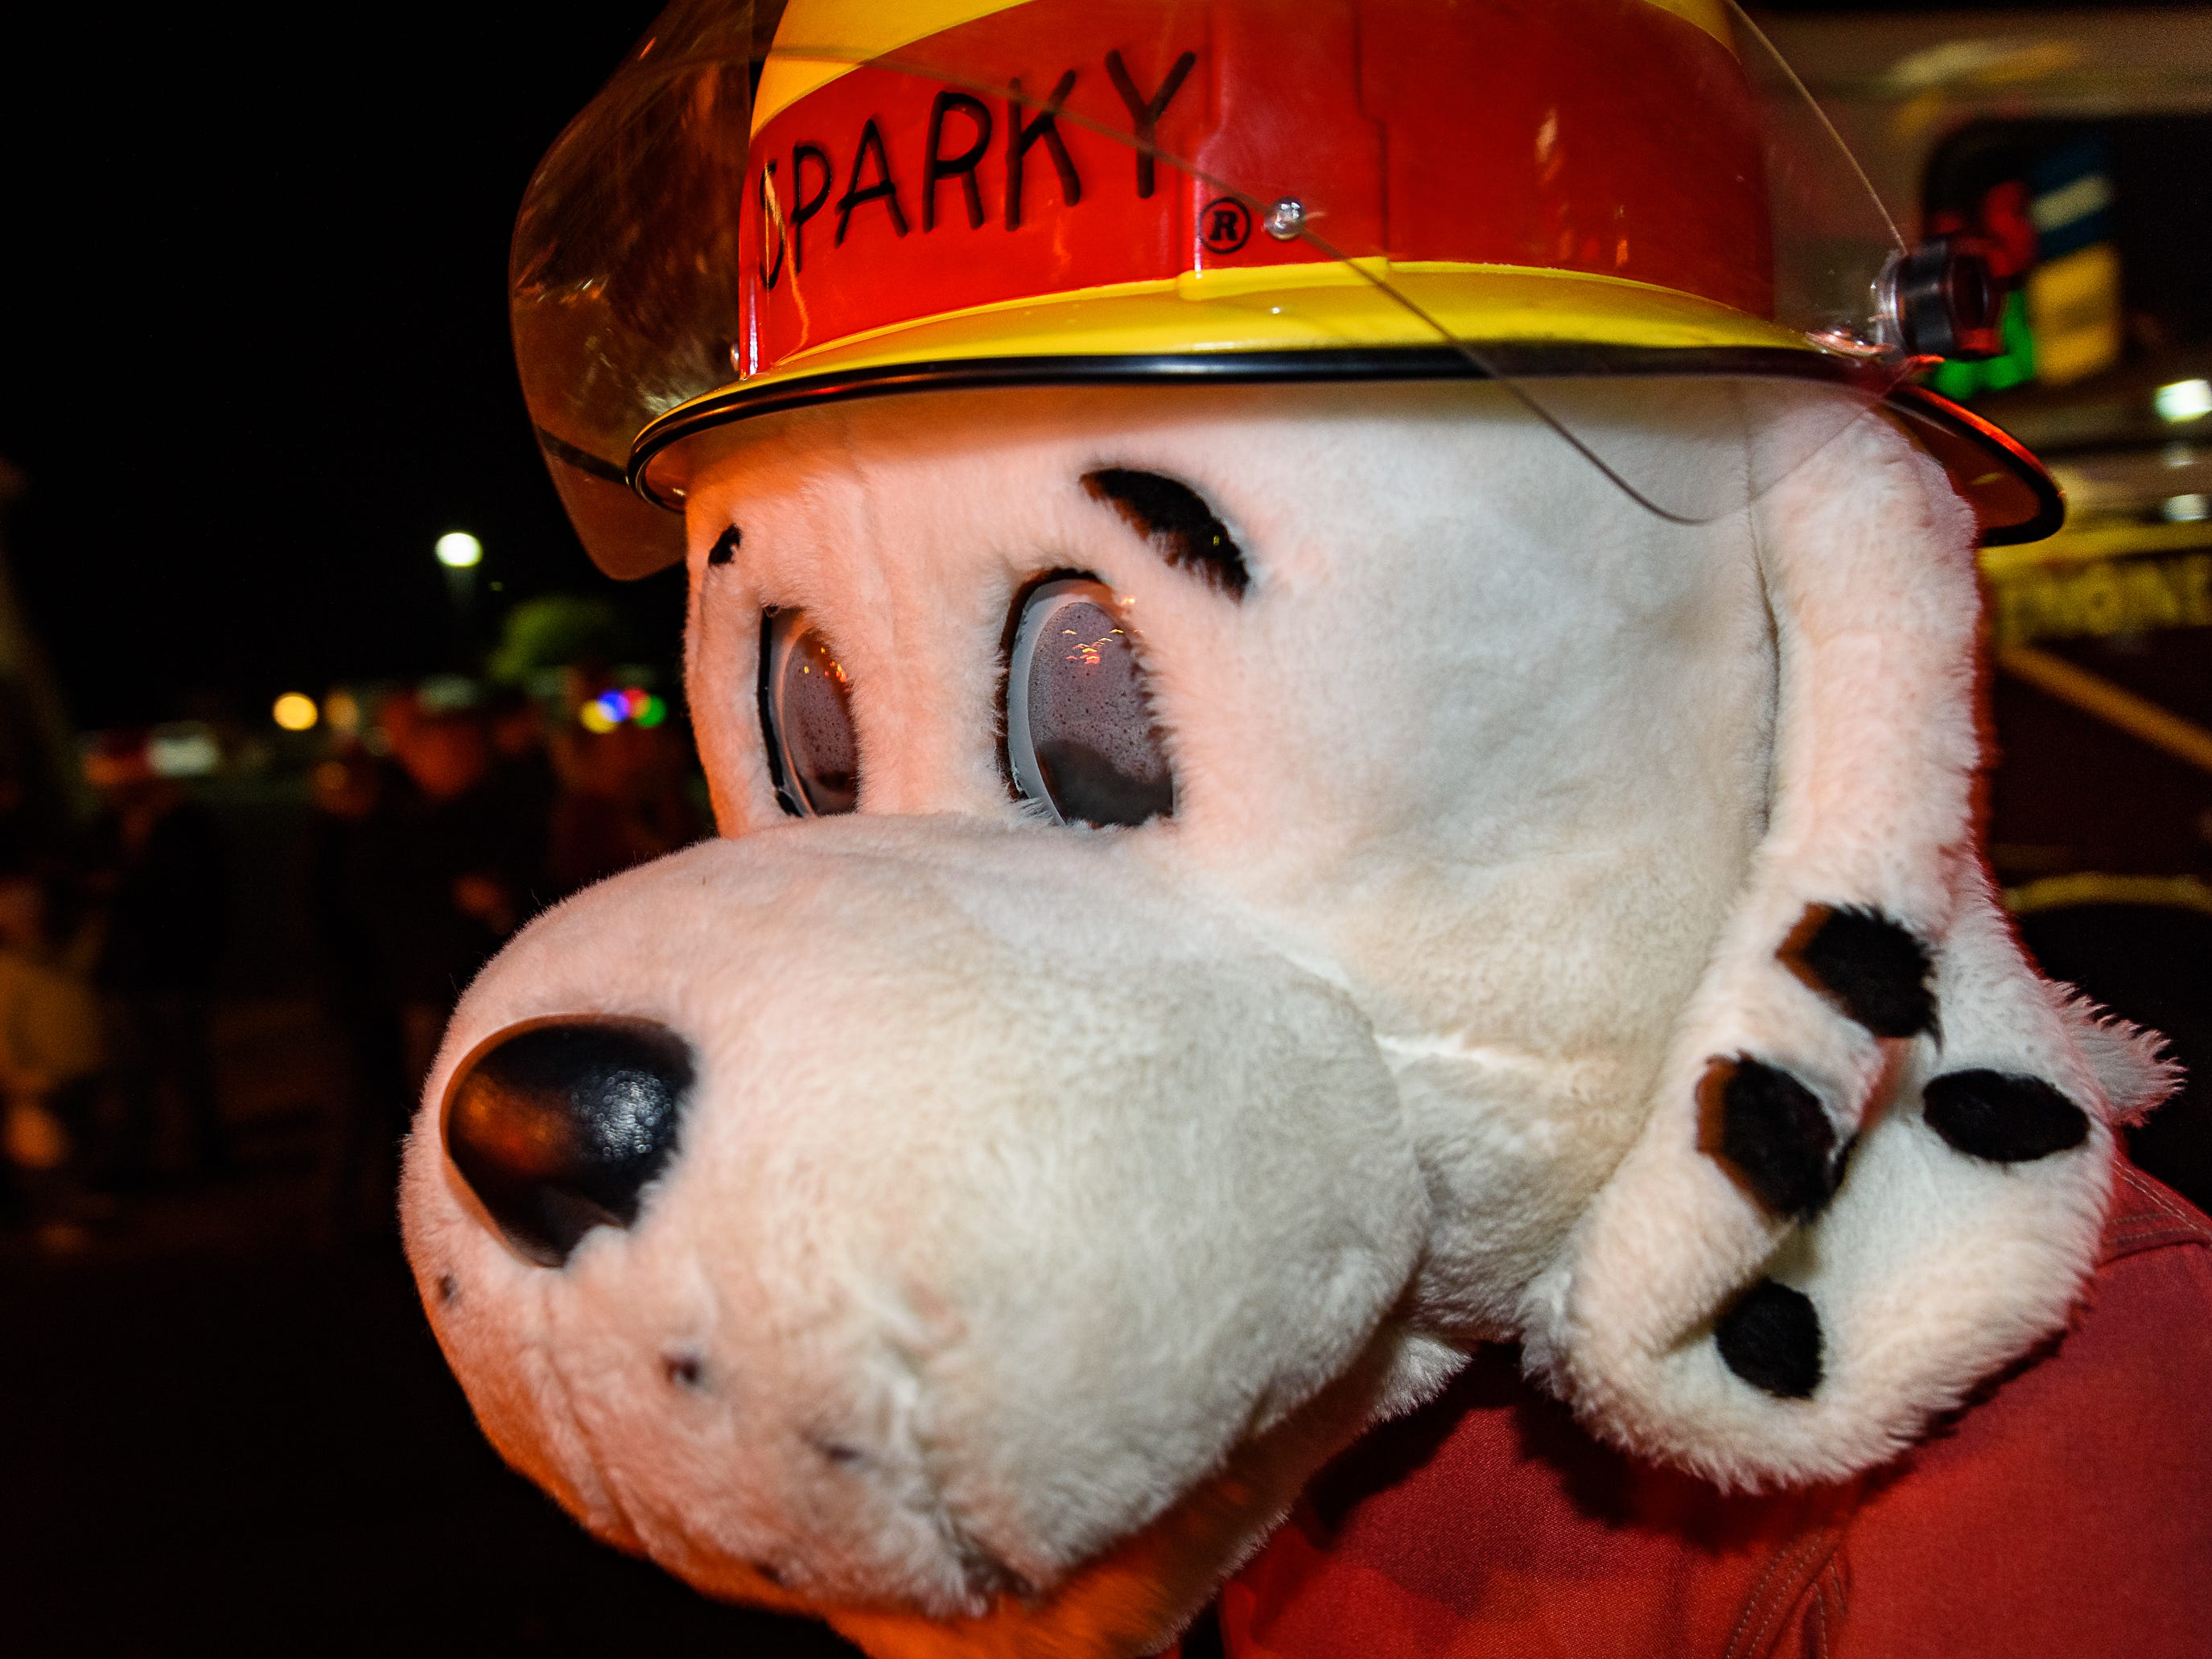 Sparky, Pocomoke fire department's mascot, takes part in the Chincoteague Christmas parade.